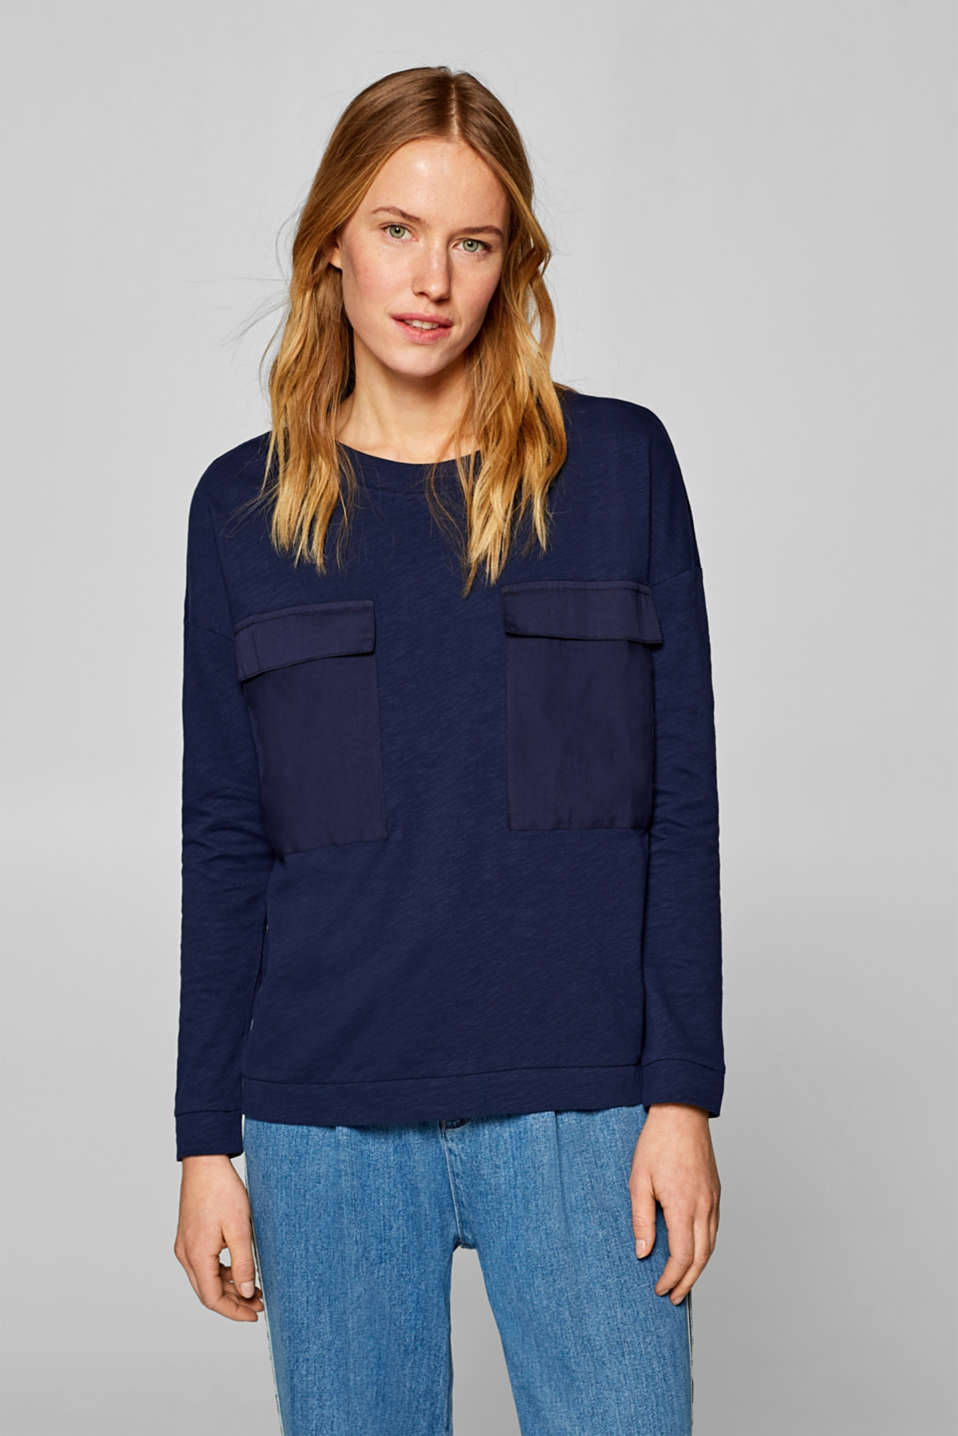 Esprit - Long sleeve top with fabric details, 100% cotton